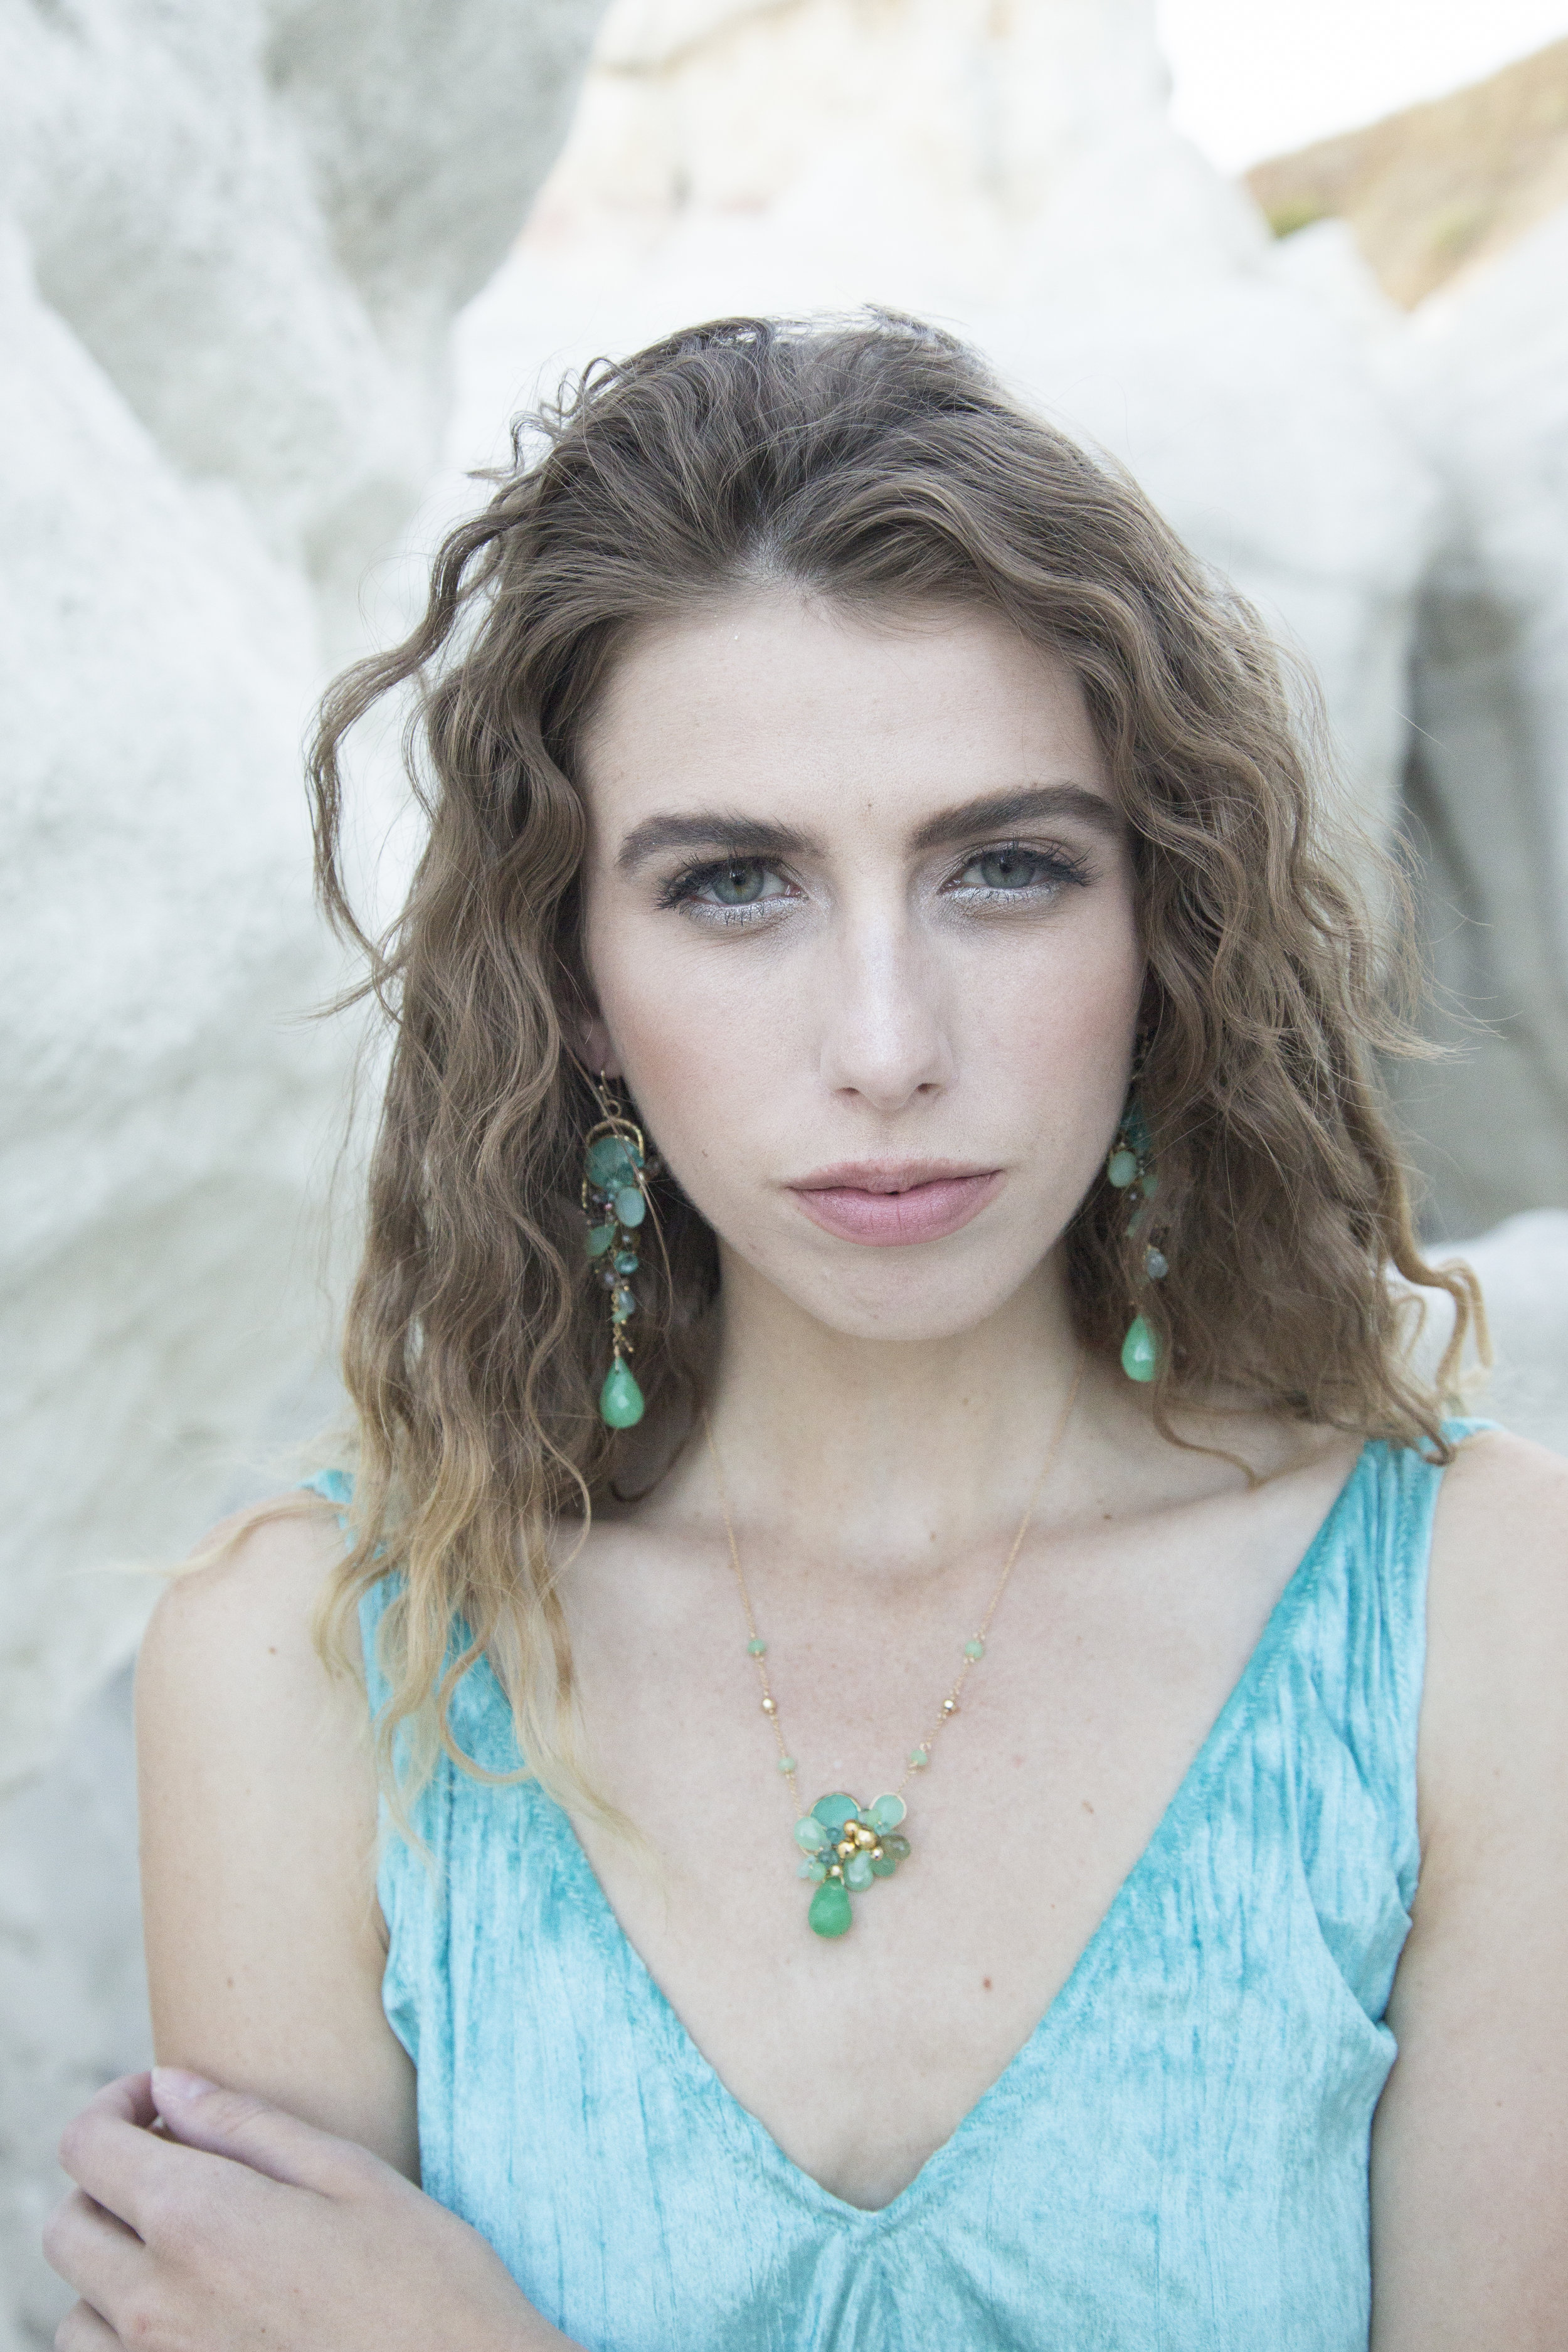 model wearing a chrysoprase and gemstone necklace